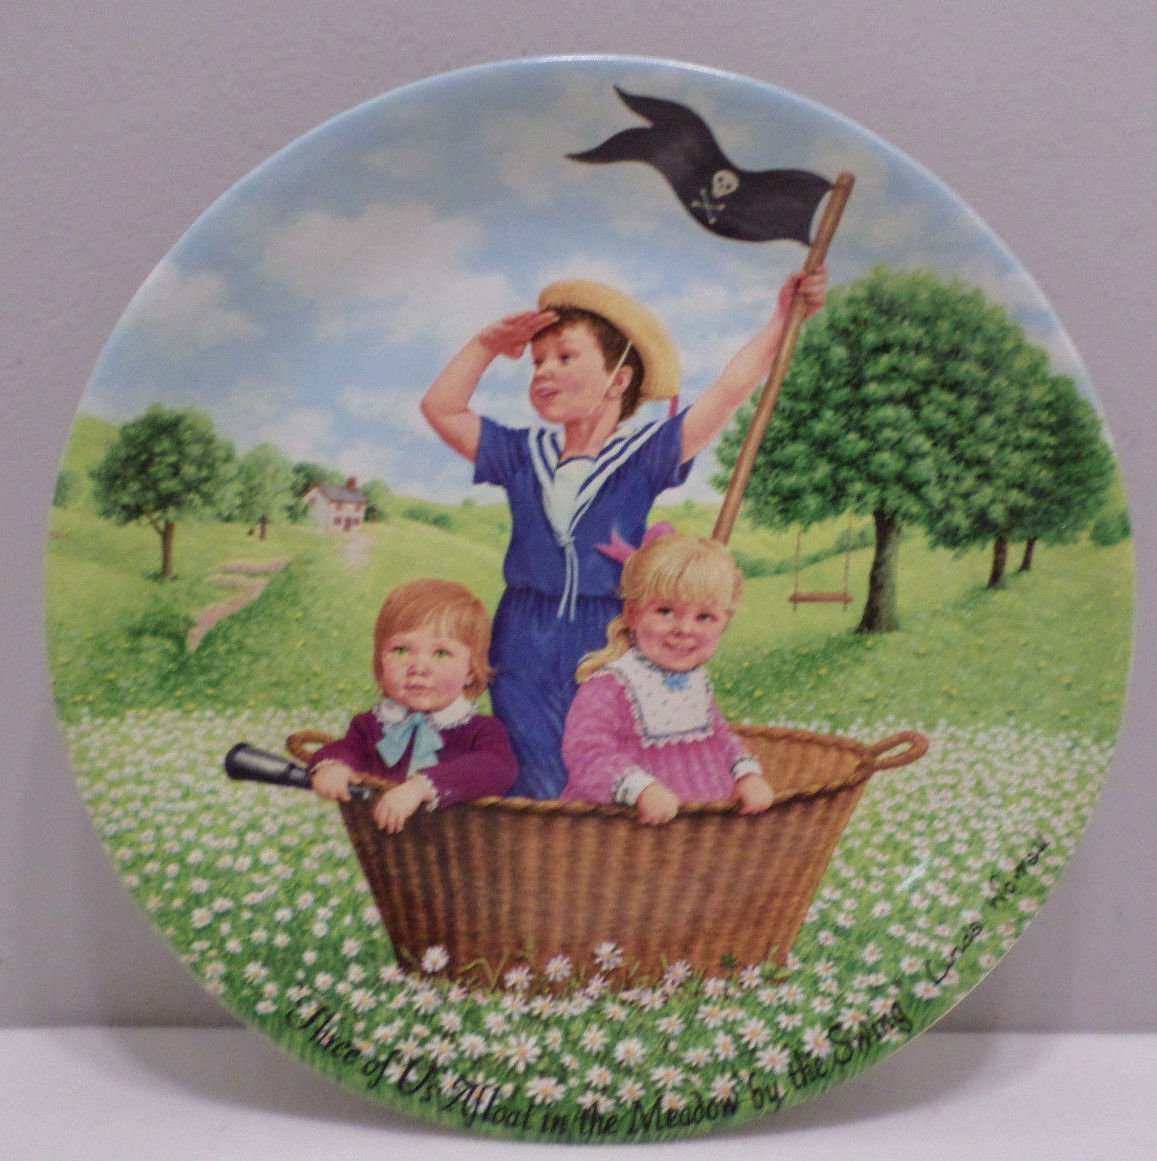 1986 Collector Plate Pirate Story by Linda Warrall Davenport Pottery Co. LTD